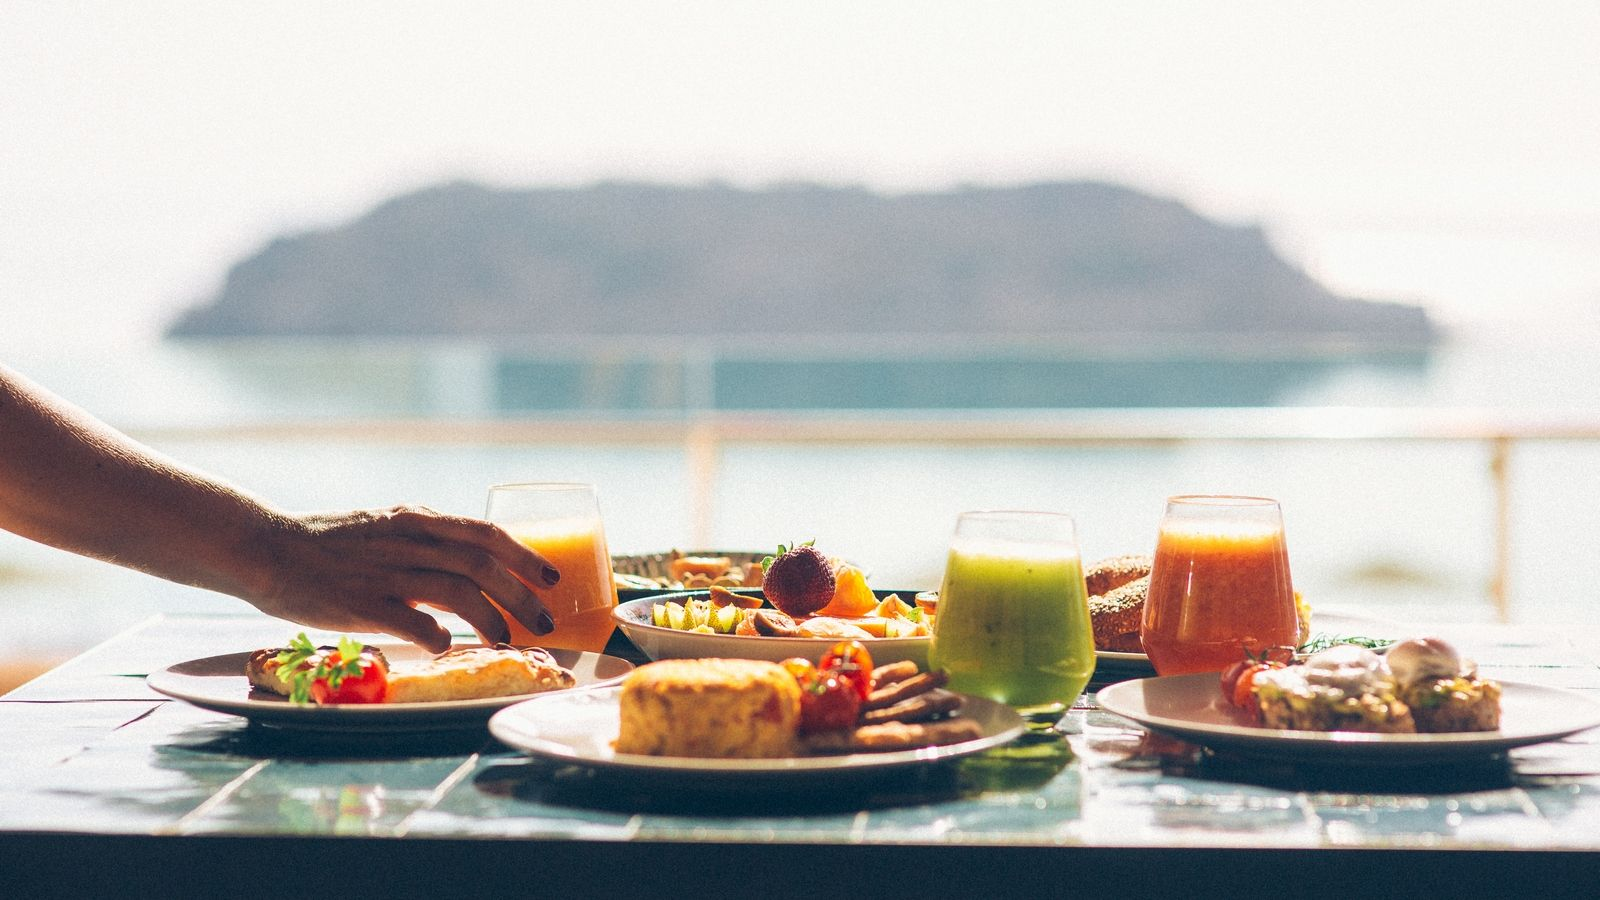 Private breakfast section at Olea Restaurant Blue Palace Resort and Spa Elounda Crete Greece